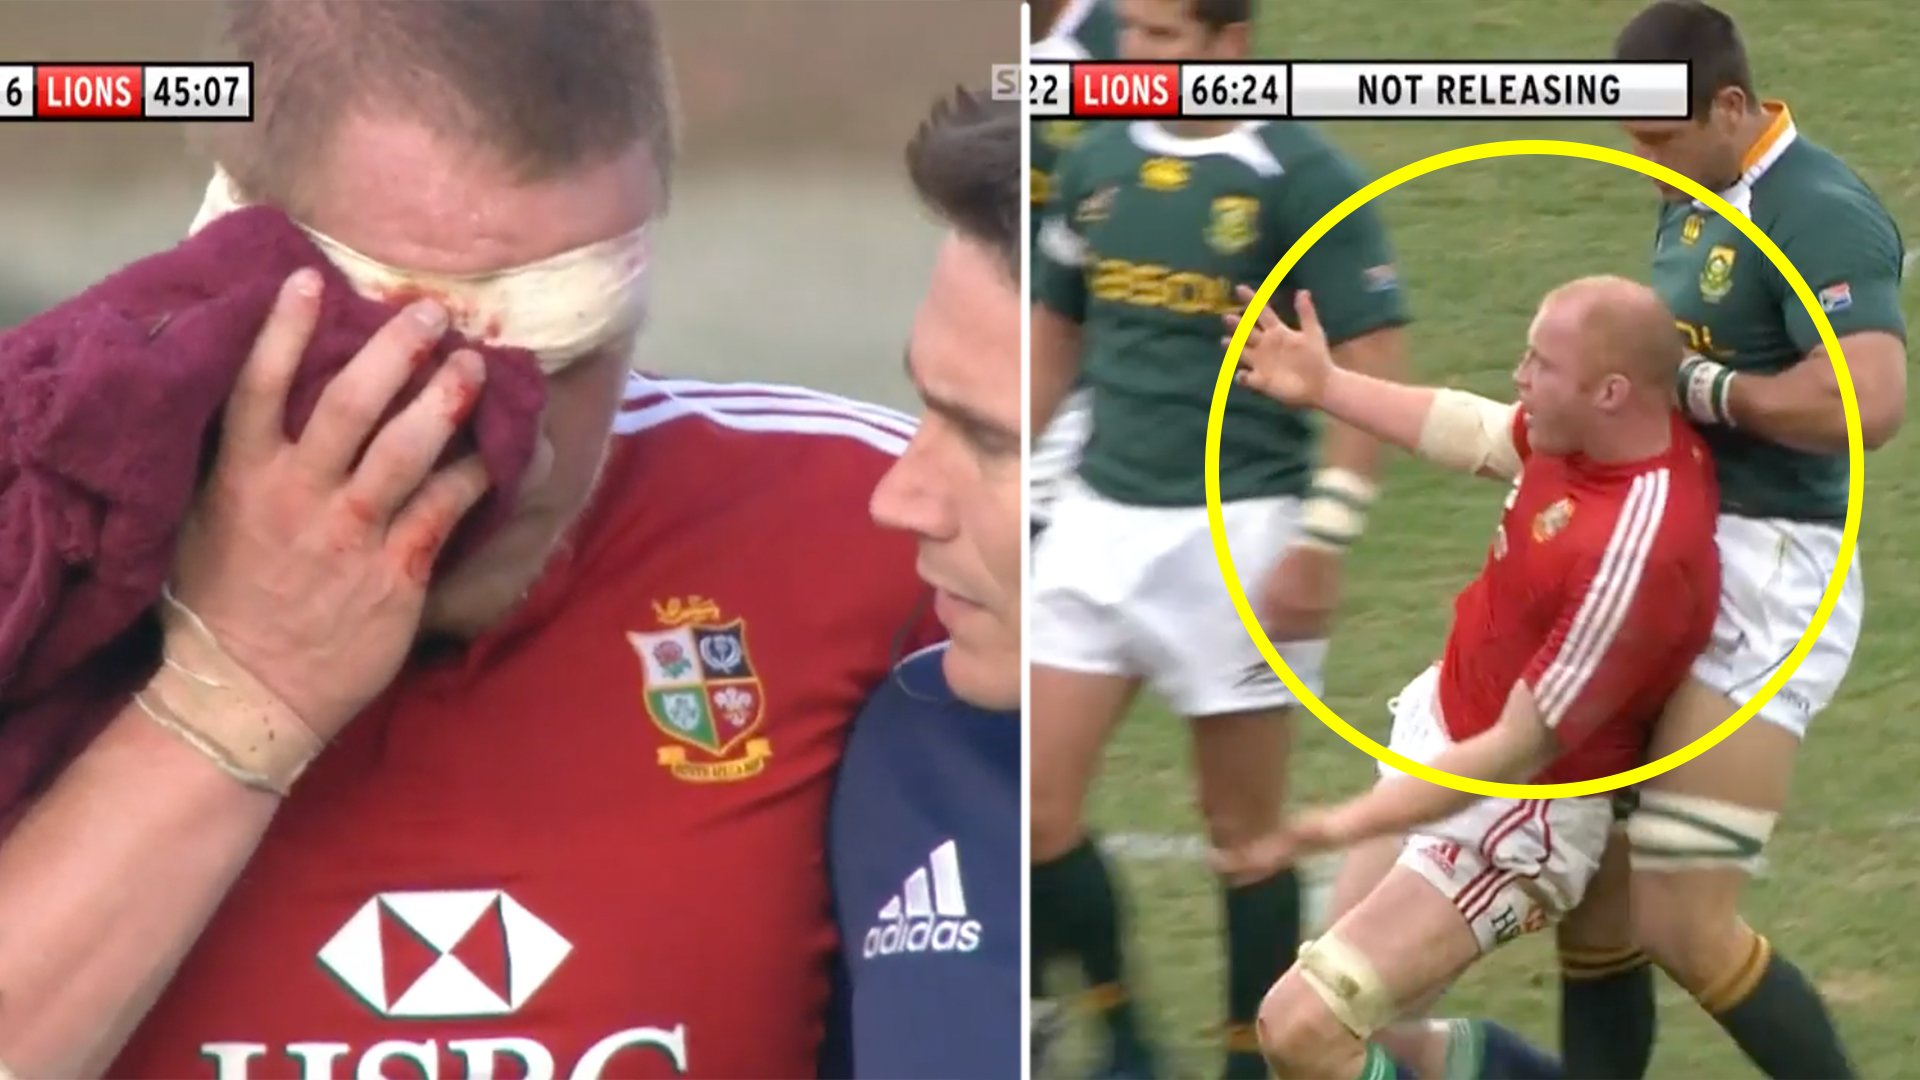 The Lions vs South Africa in 2009 was the only example of a team being properly bullied in rugby